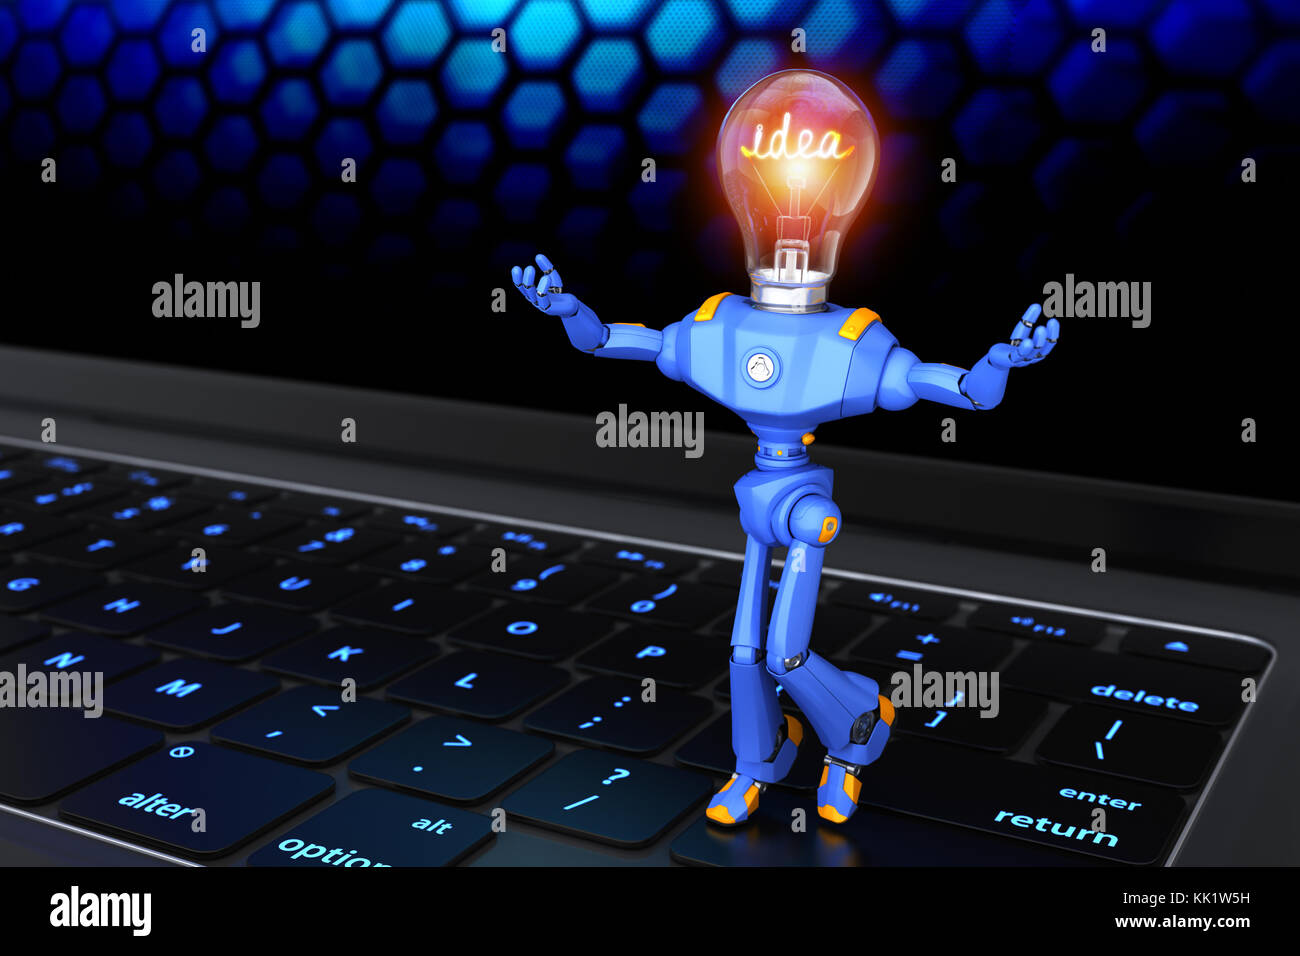 Petit robot debout sur clavier. 3d illustration Photo Stock